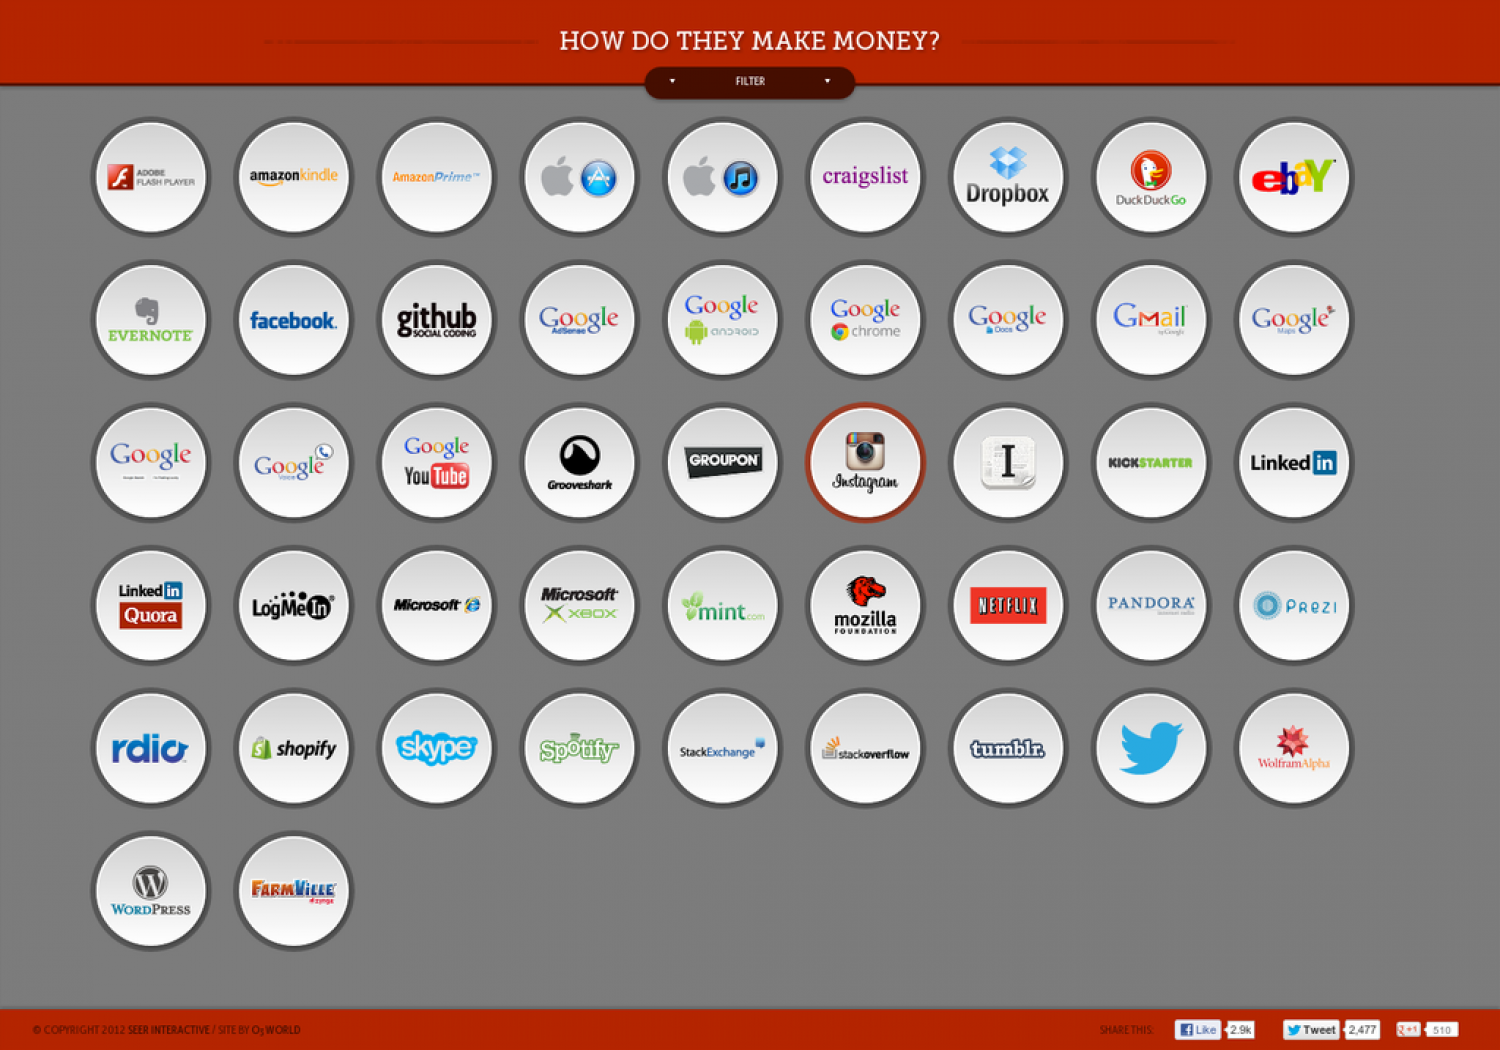 How do our favorite tech companies make money? Infographic